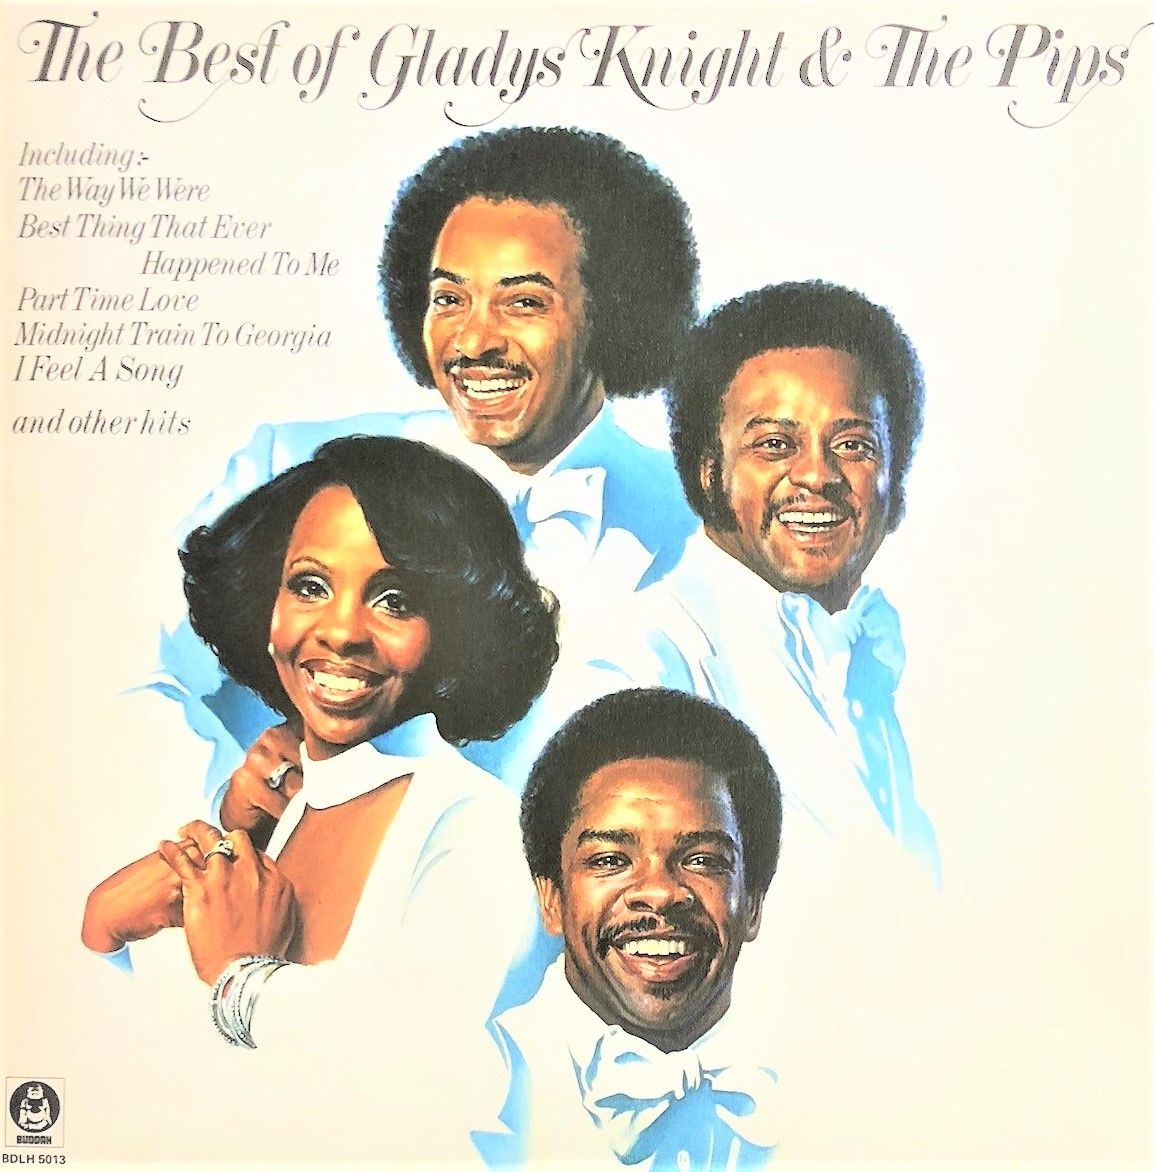 Gladys Knight The Pips The Best Of Gladys Knight The Pips Gladys Knight Lp Albums Vinyl Record Album